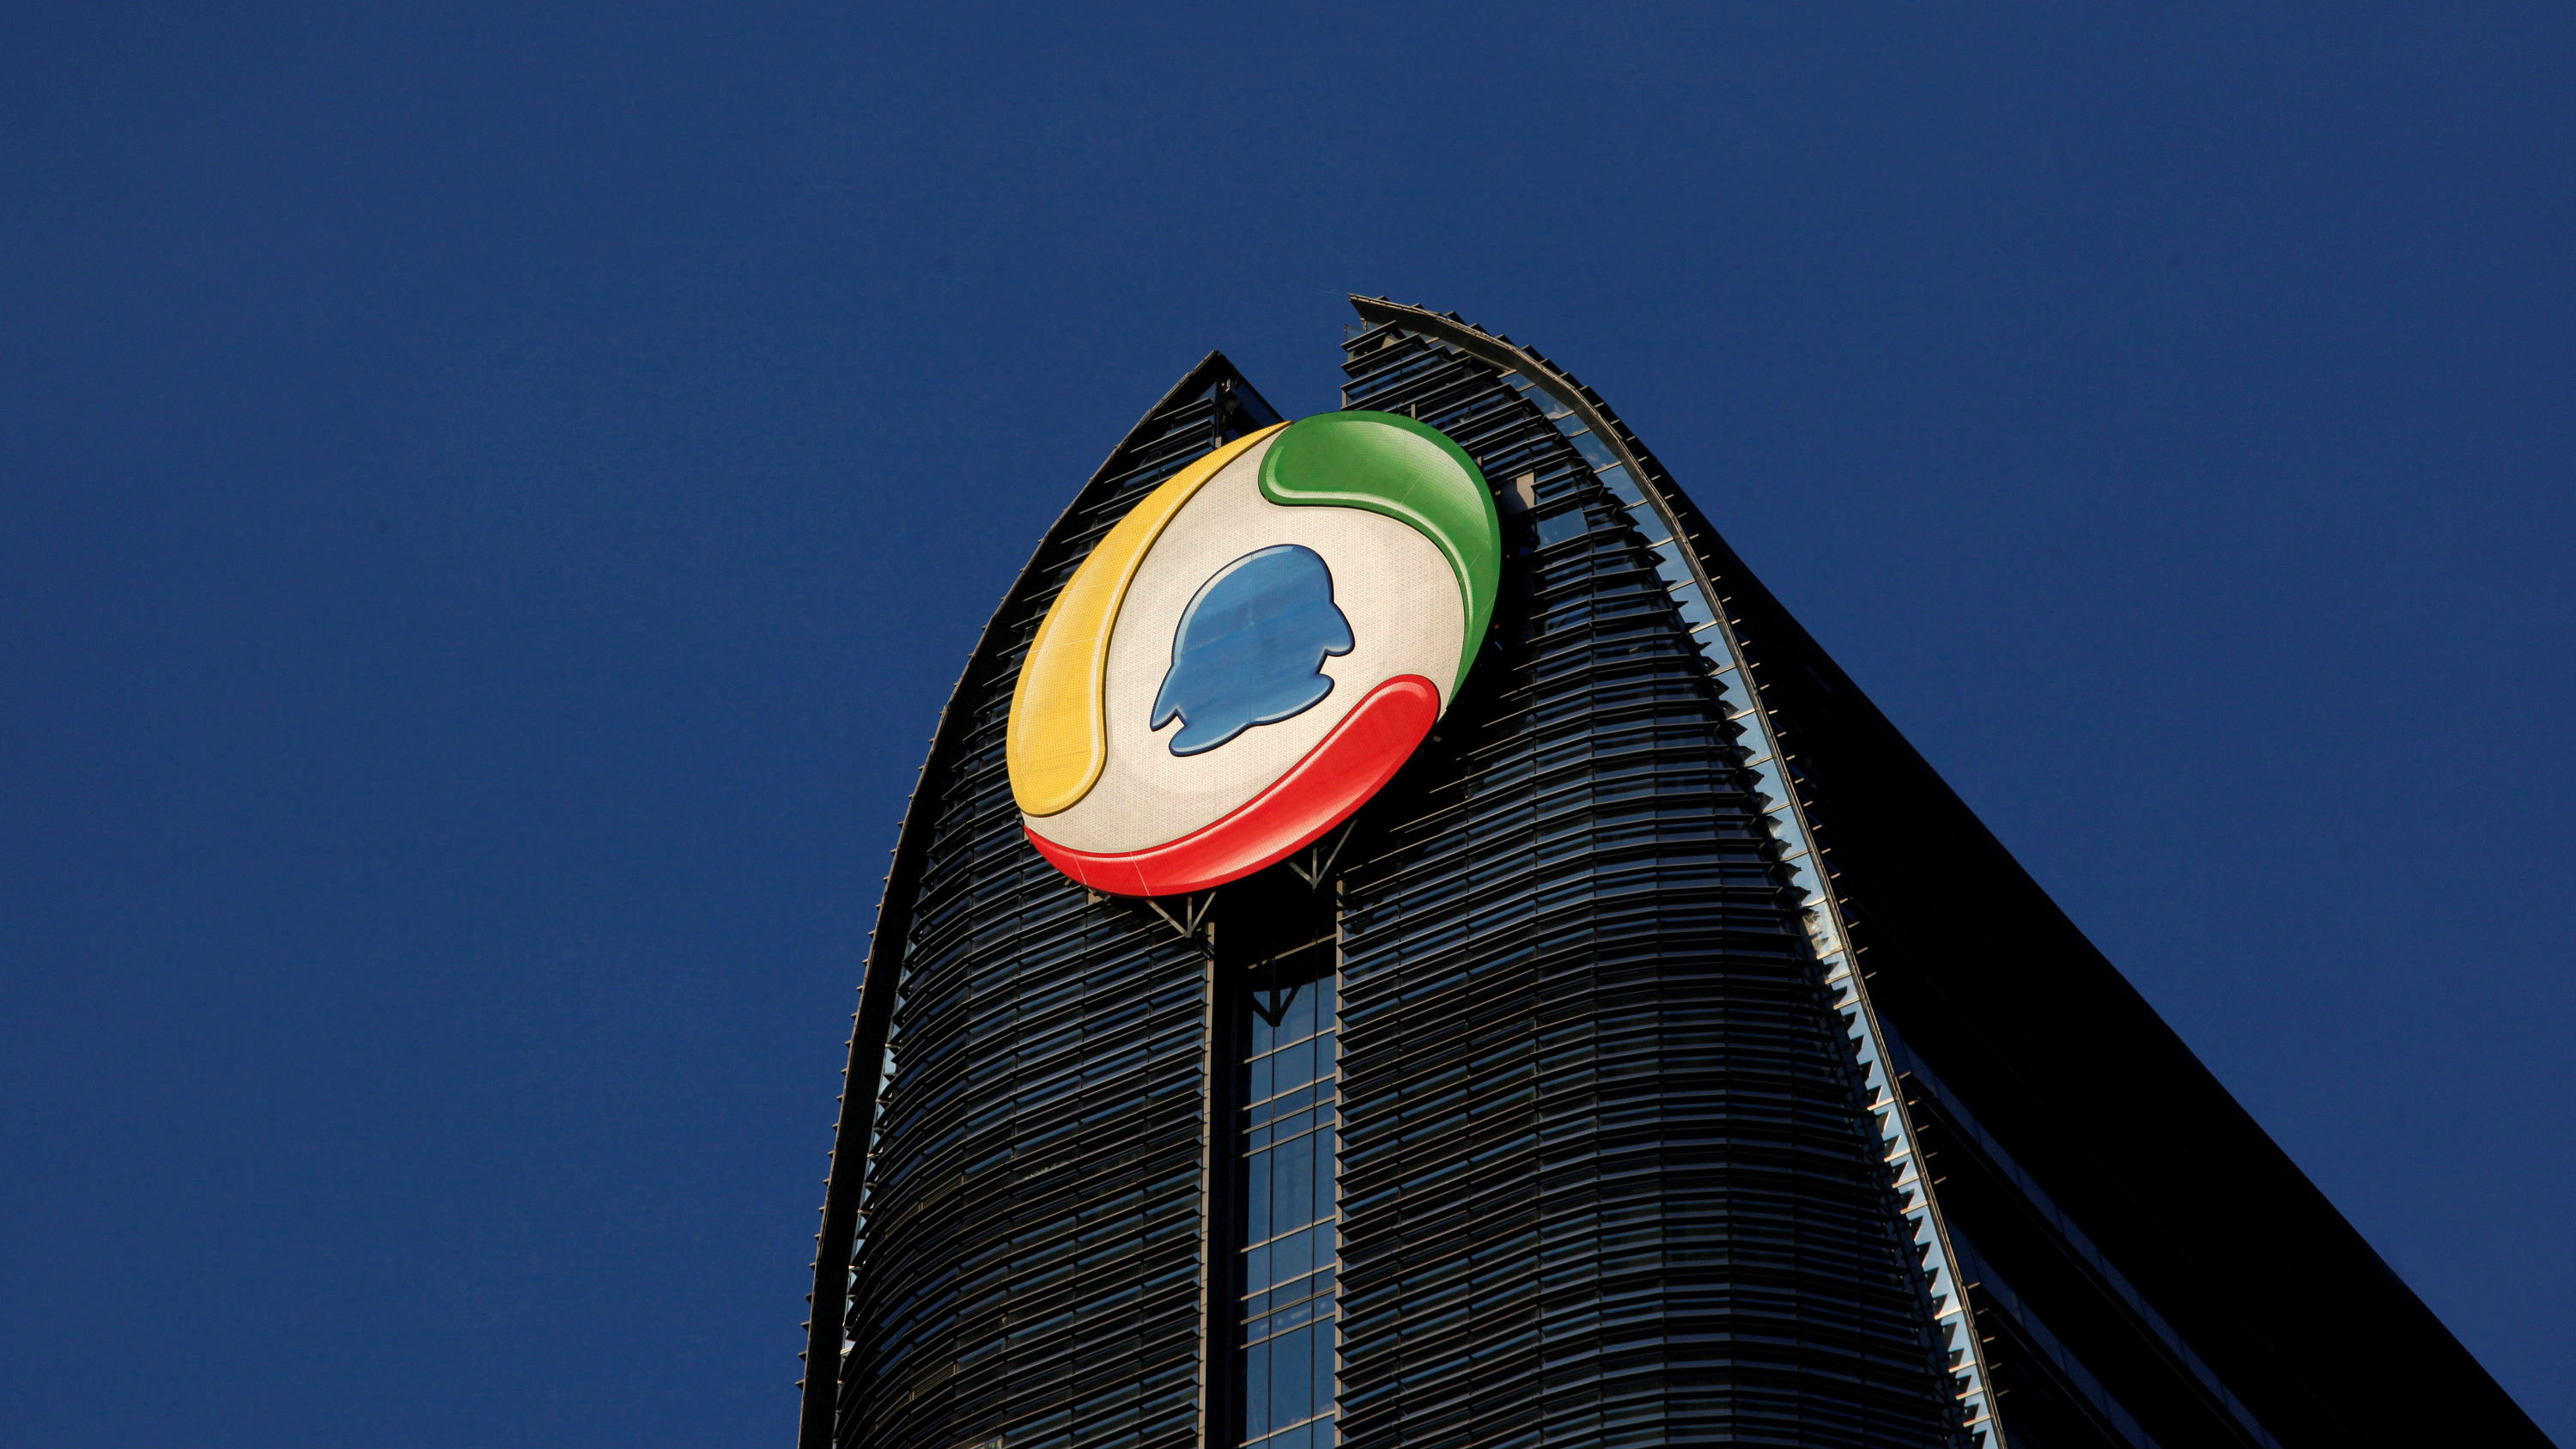 The logo of QQ.com is seen at Tencent headquarters at Nanshan Hi-Tech Park Industrial Park in the southern Chinese city of Shenzhen June 9, 2011.